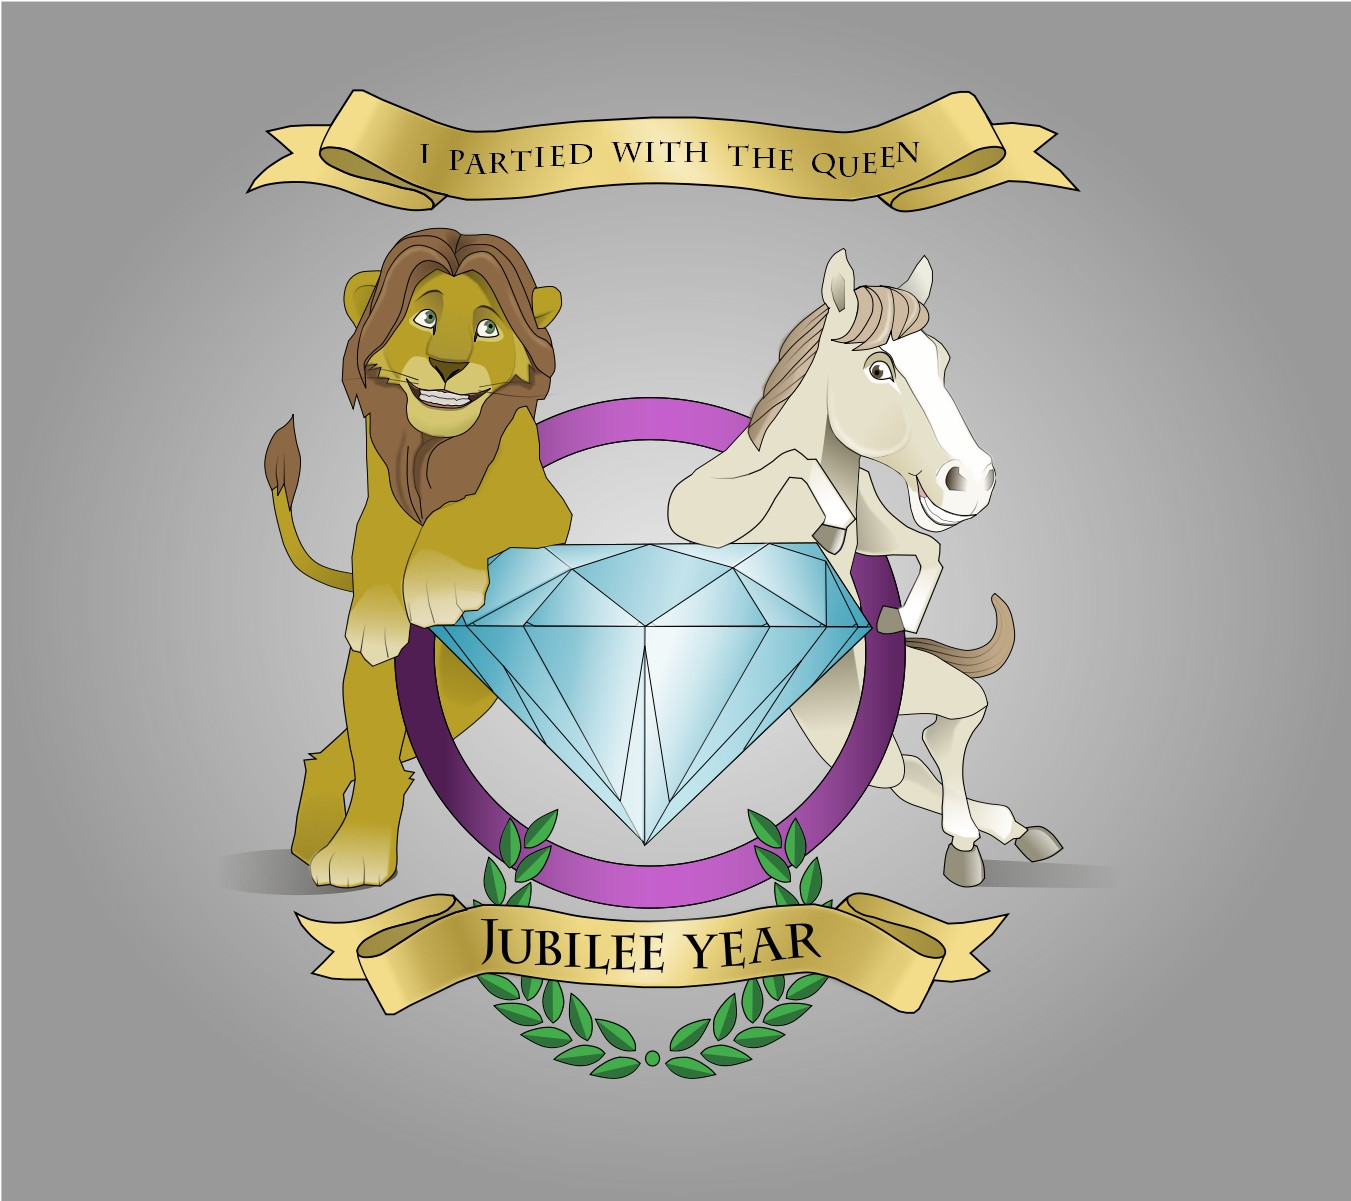 Help Jubilee Year with a new logo